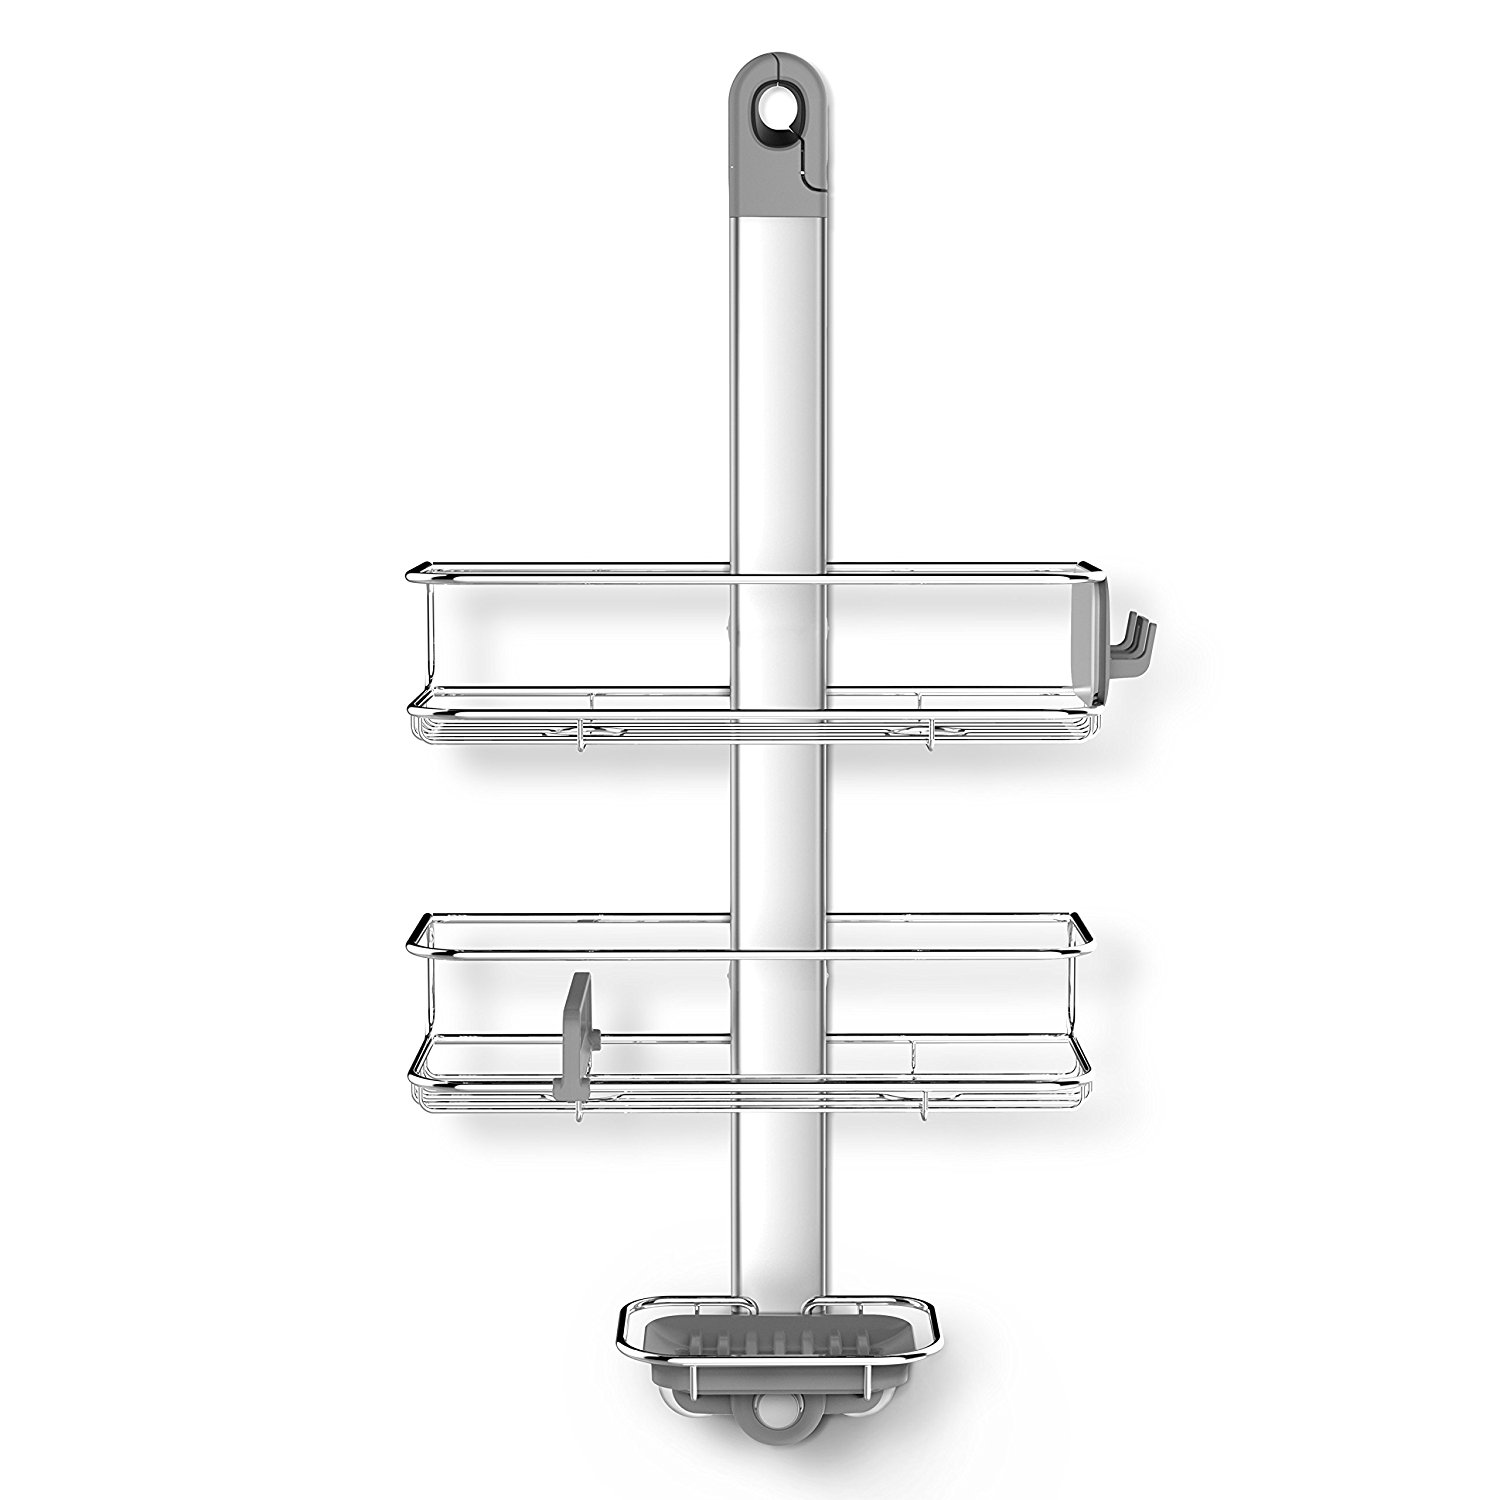 Have A Best Shower Caddy with Simplehuman Shower Caddy: Adjustable Shower Caddy | Shower Tension Caddy | Simplehuman Shower Caddy